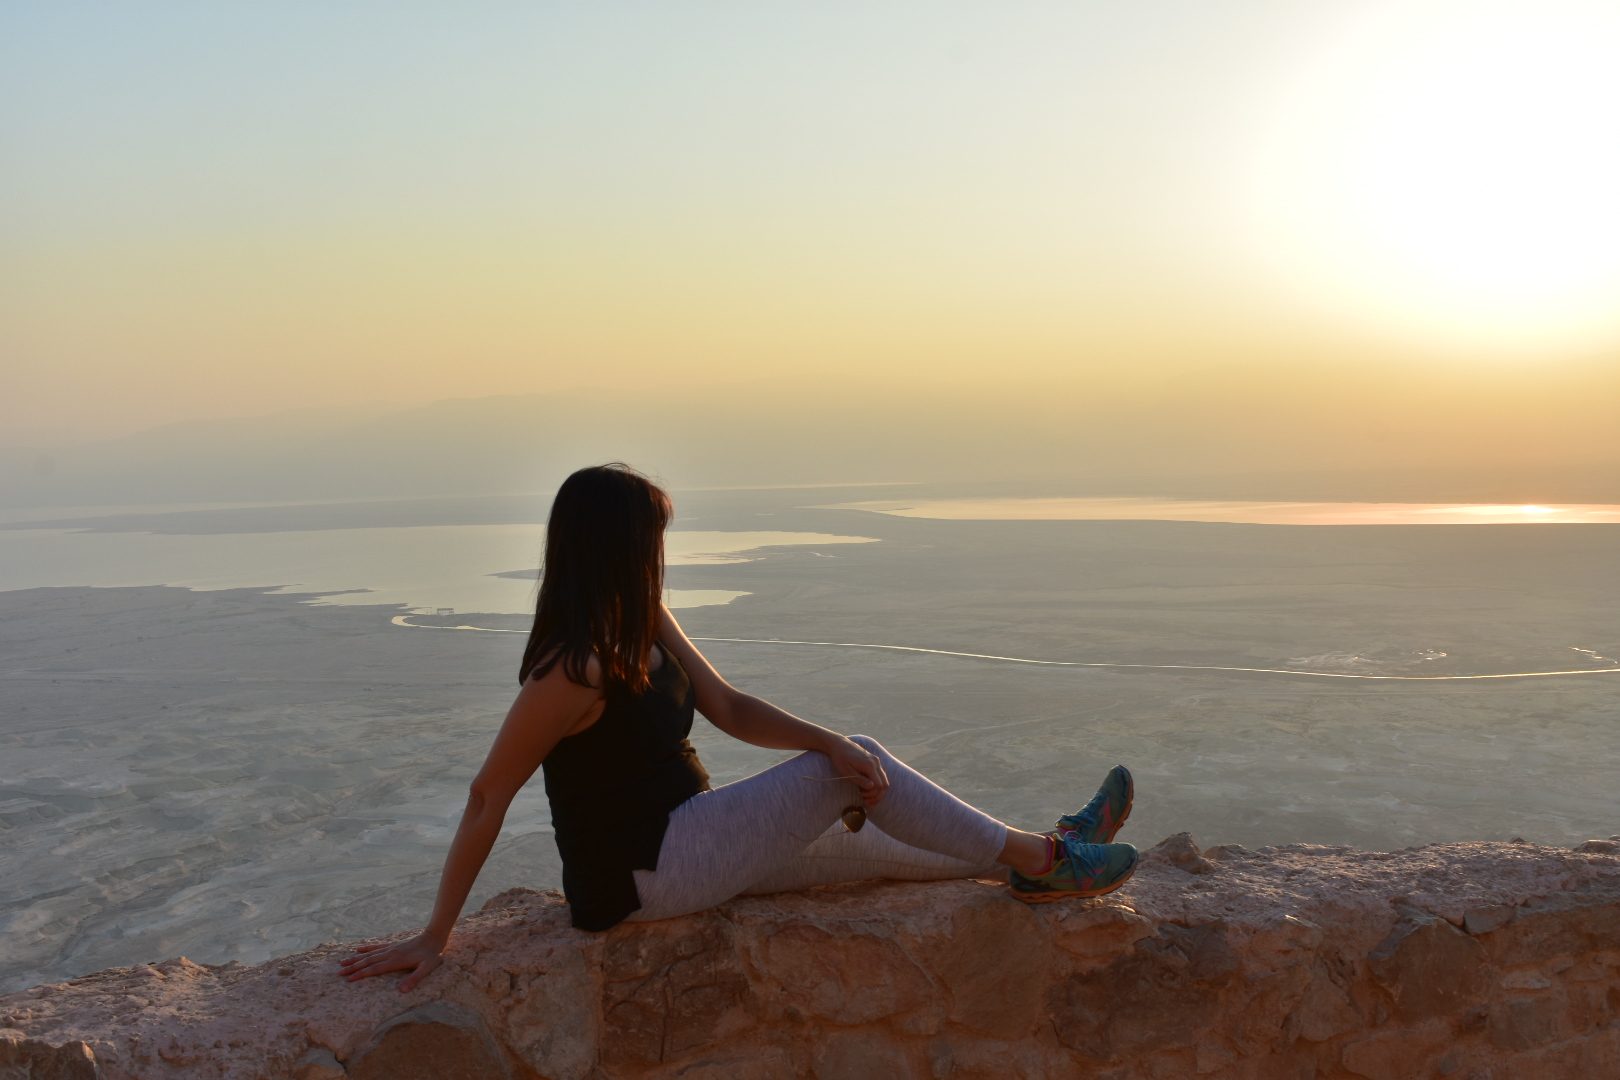 We reached the top of the mountain at sunrise (yup, still pregnant).